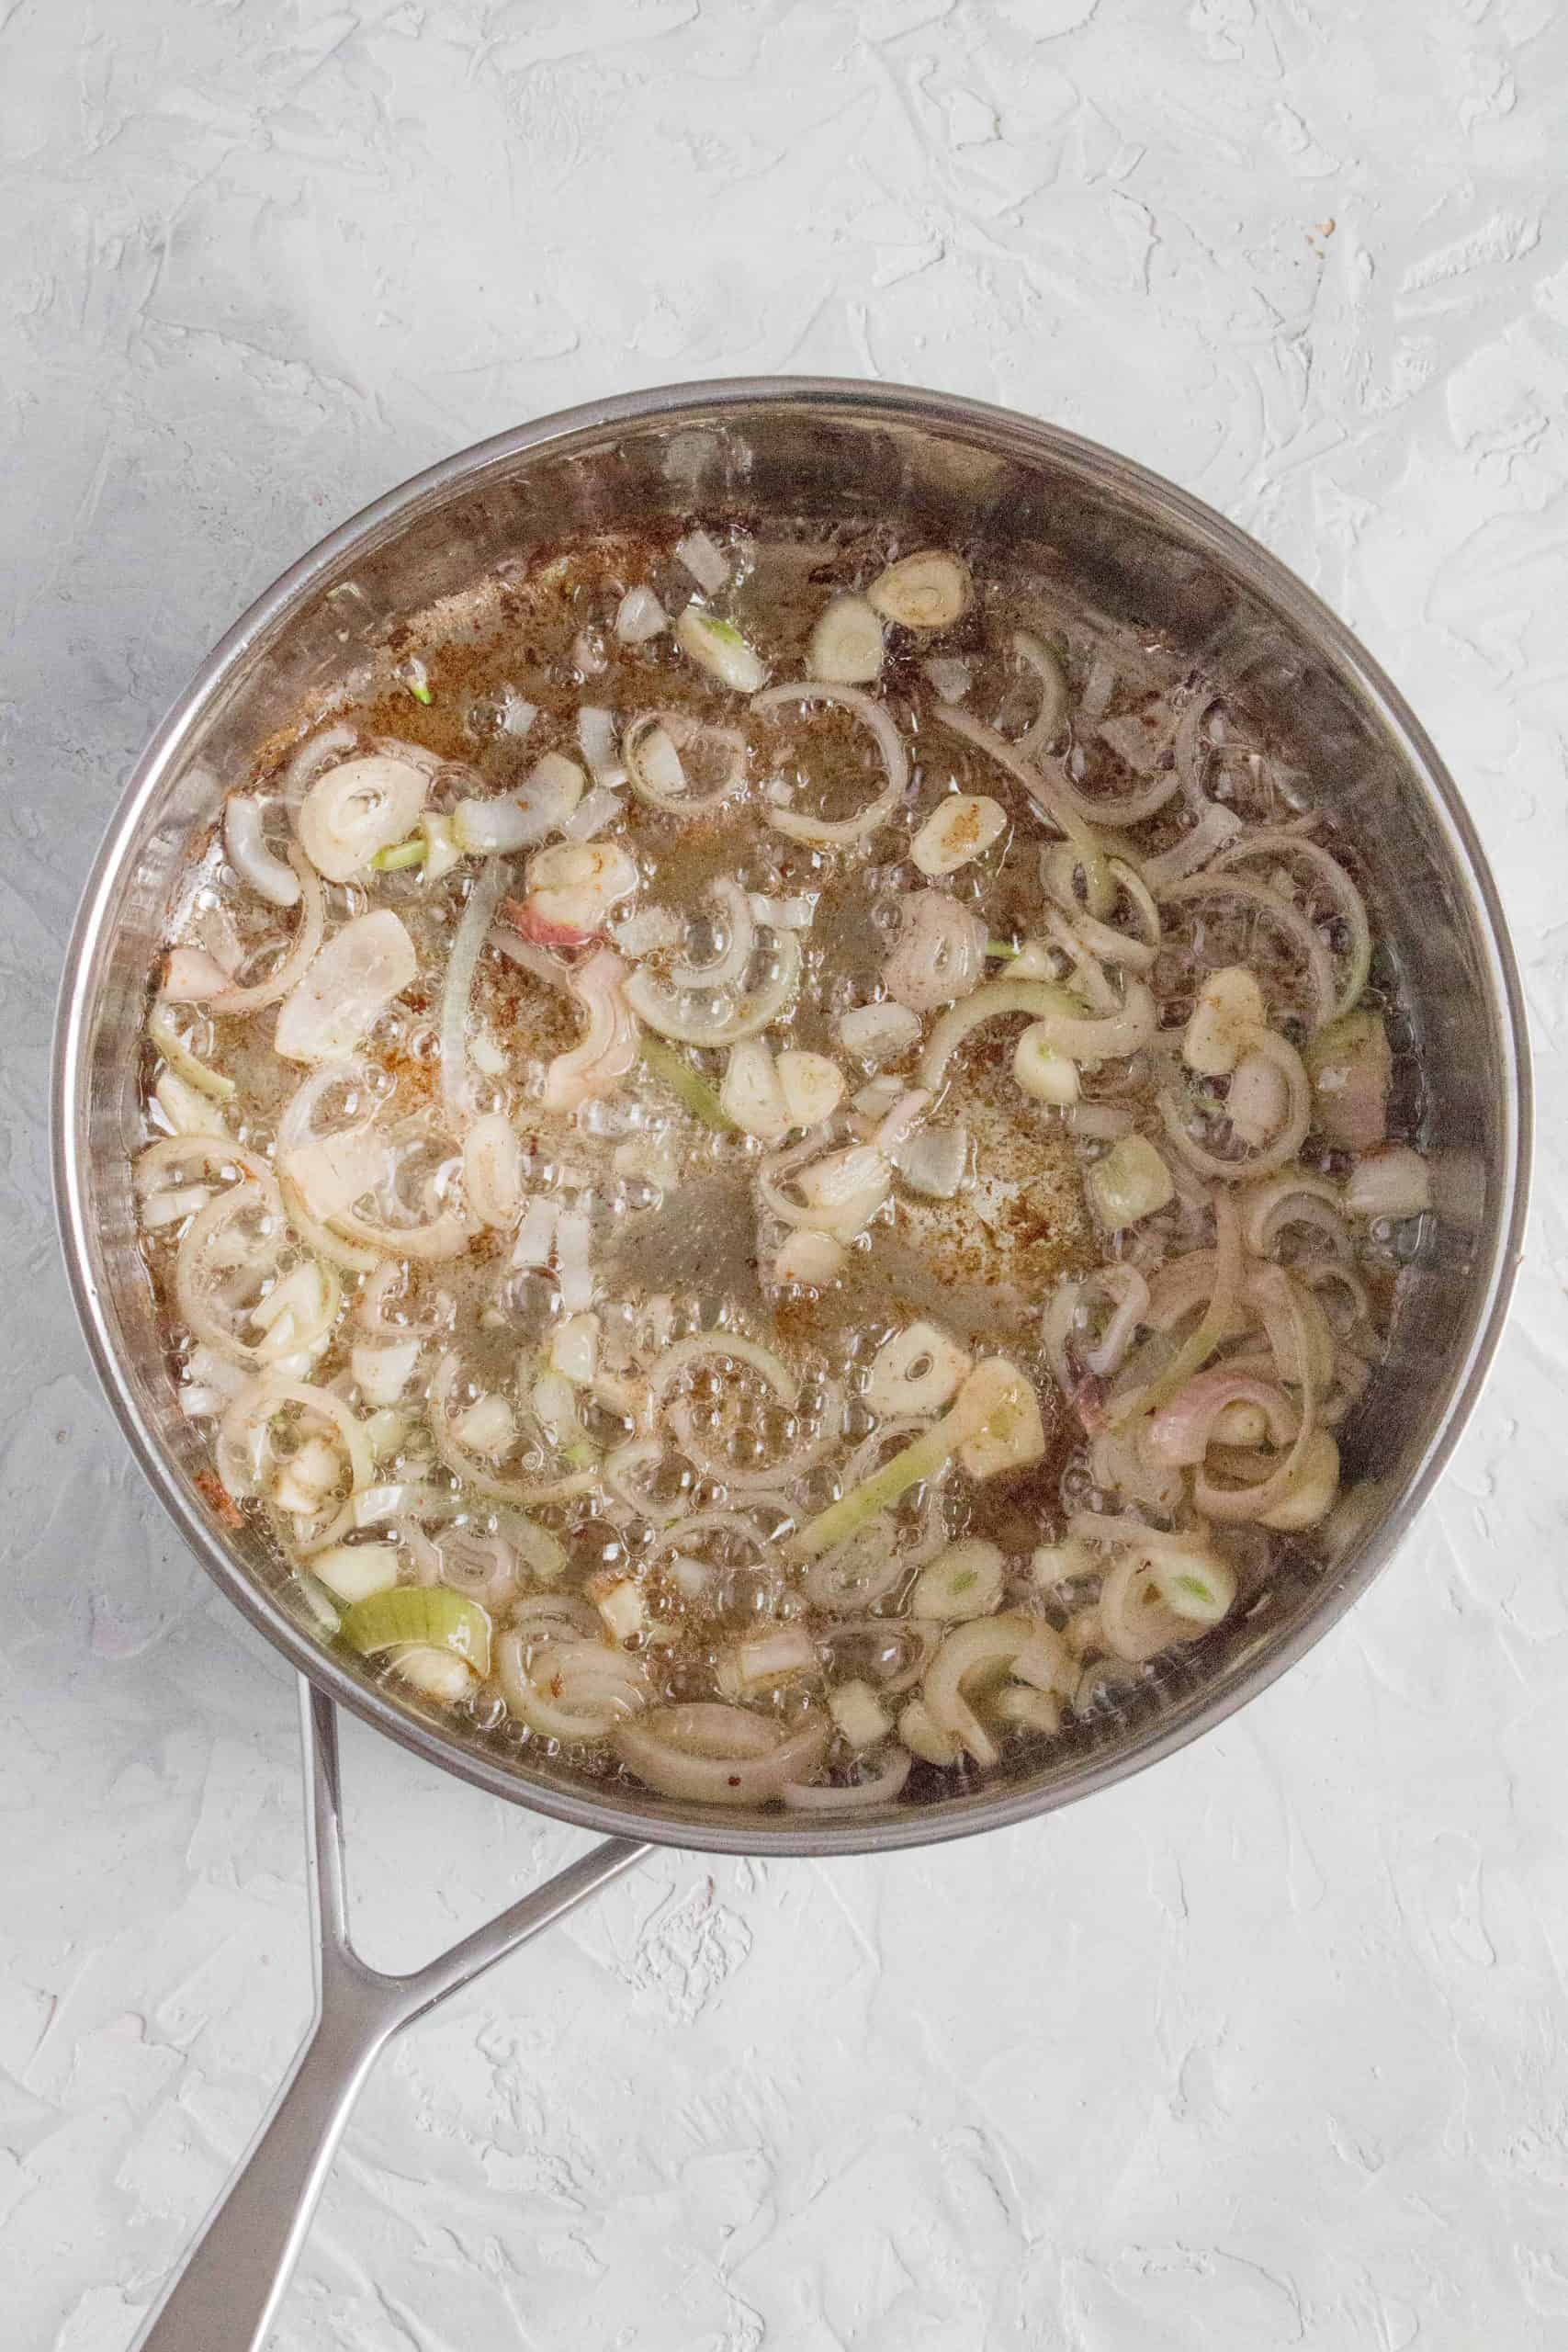 sauté your shallots and garlic until softened.